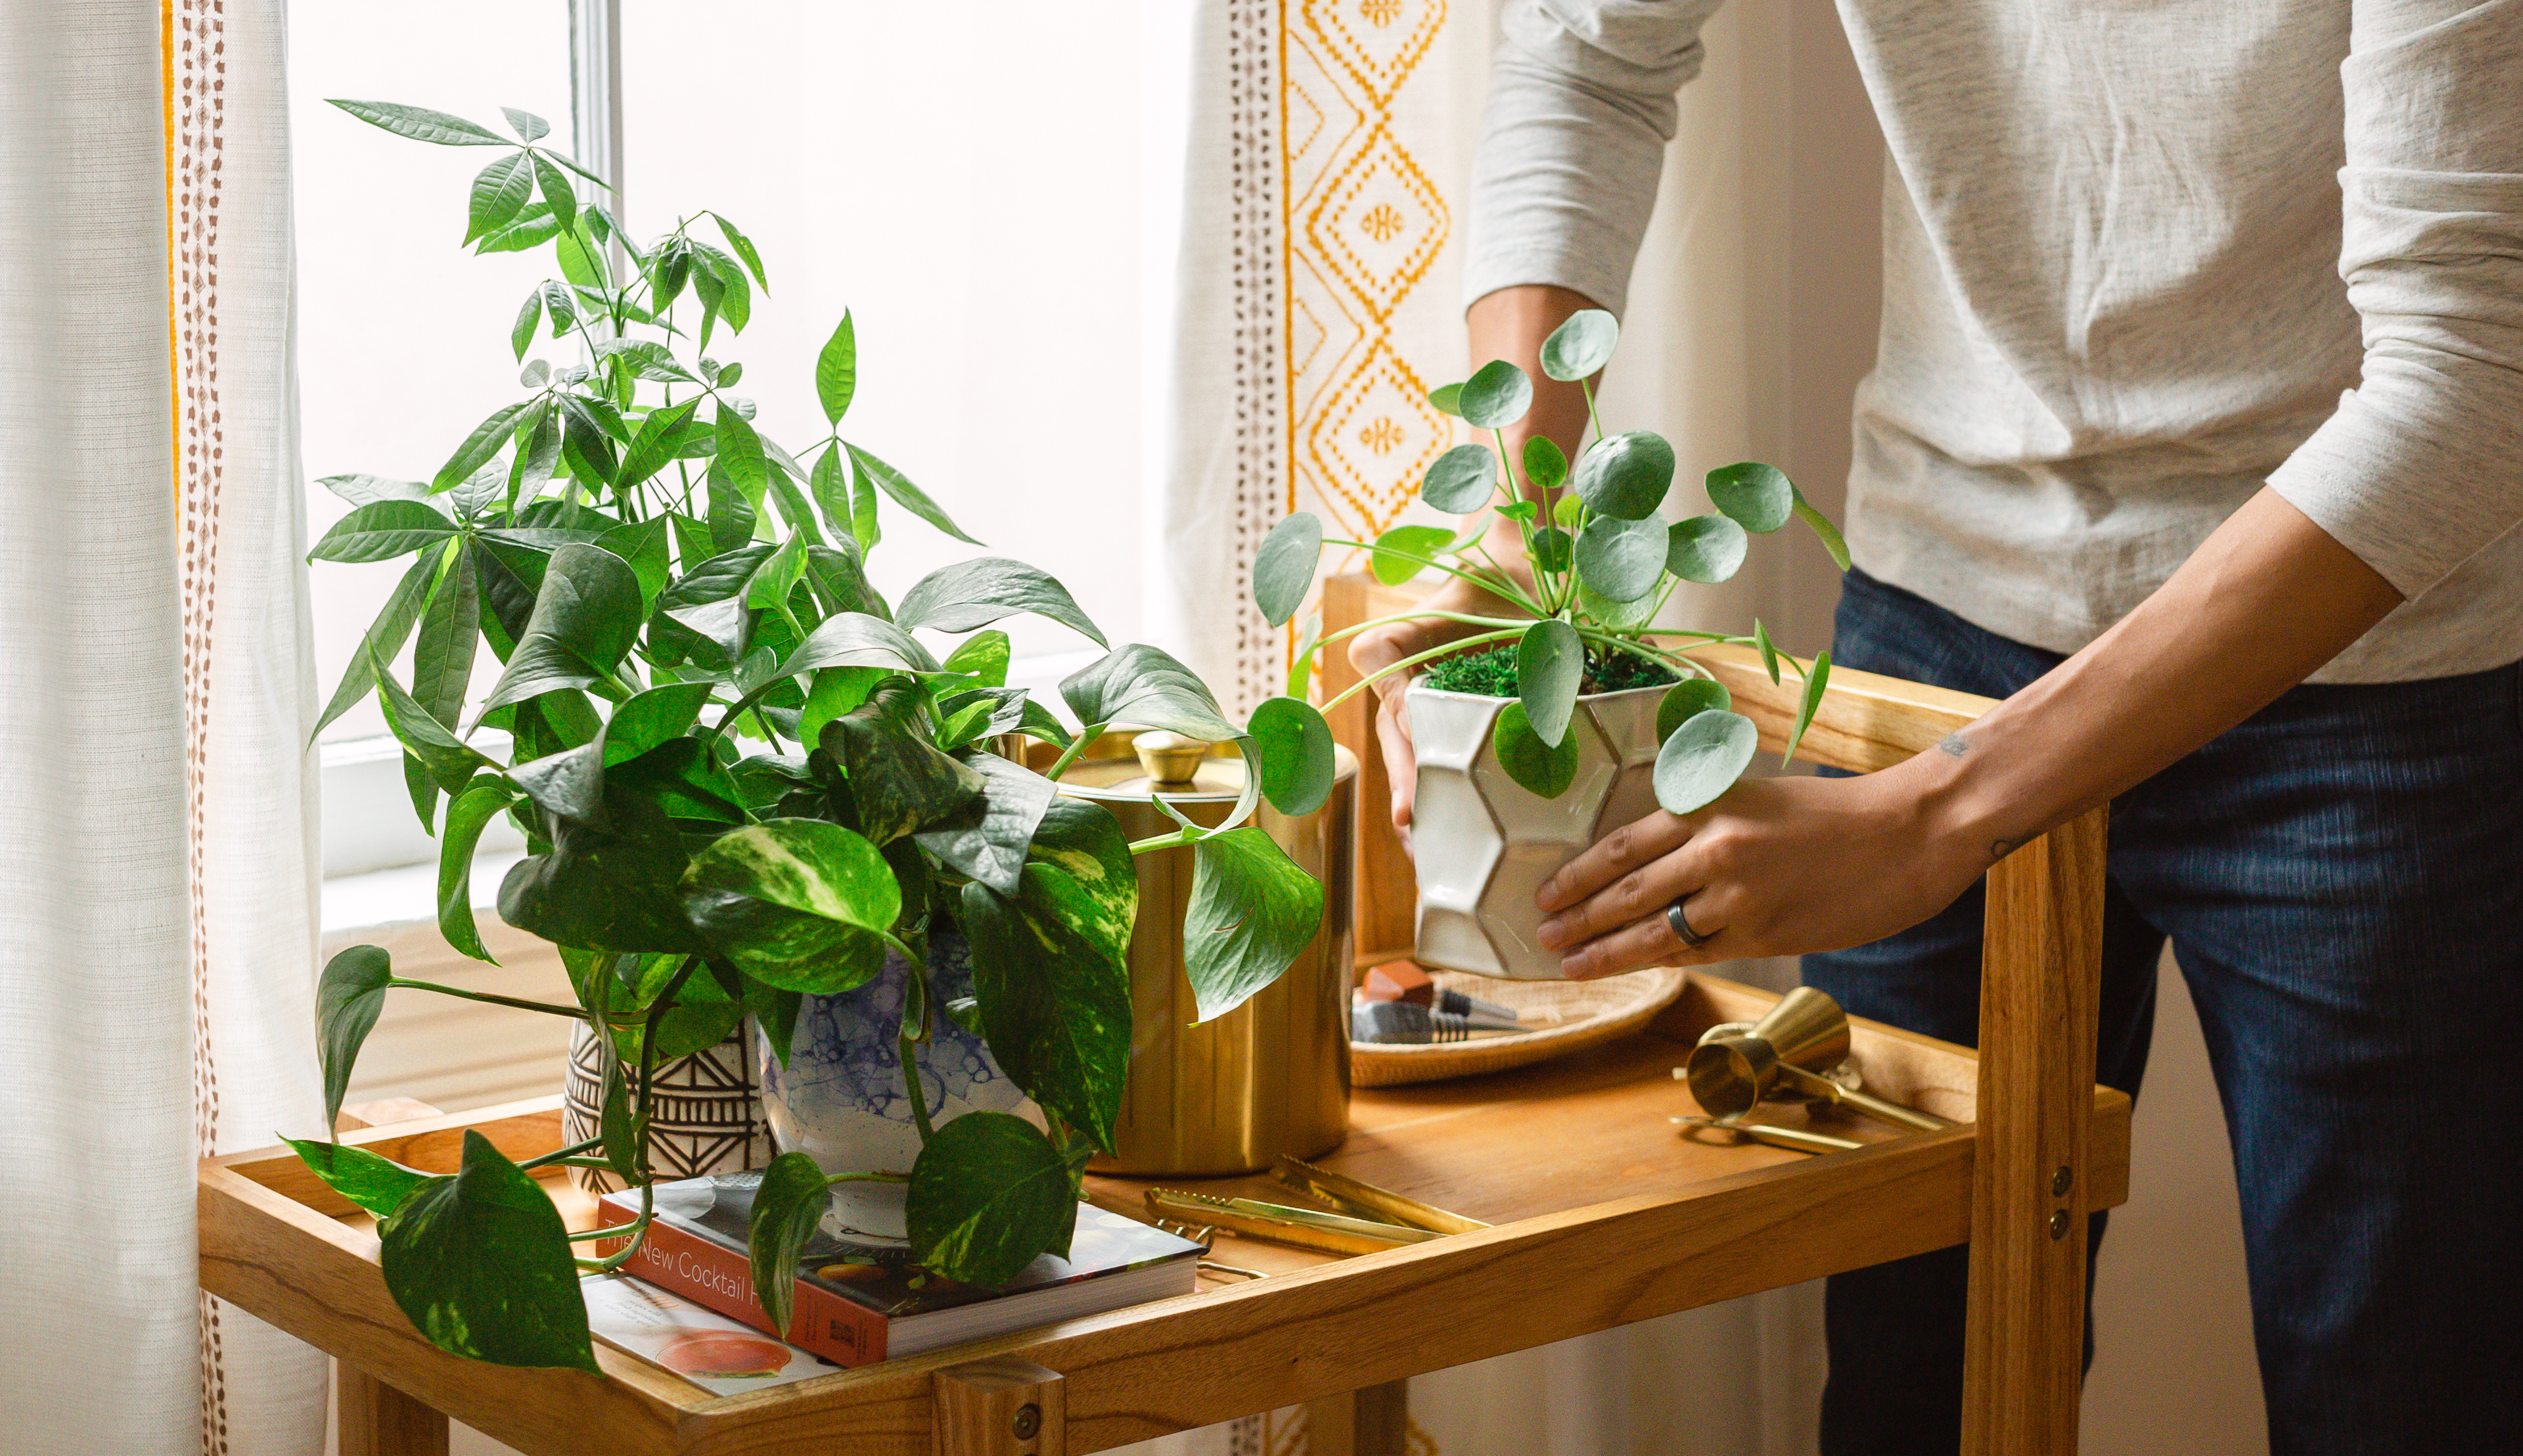 Cart full of various indoor plants. Hands putting pilea plant down next to pothos plant.